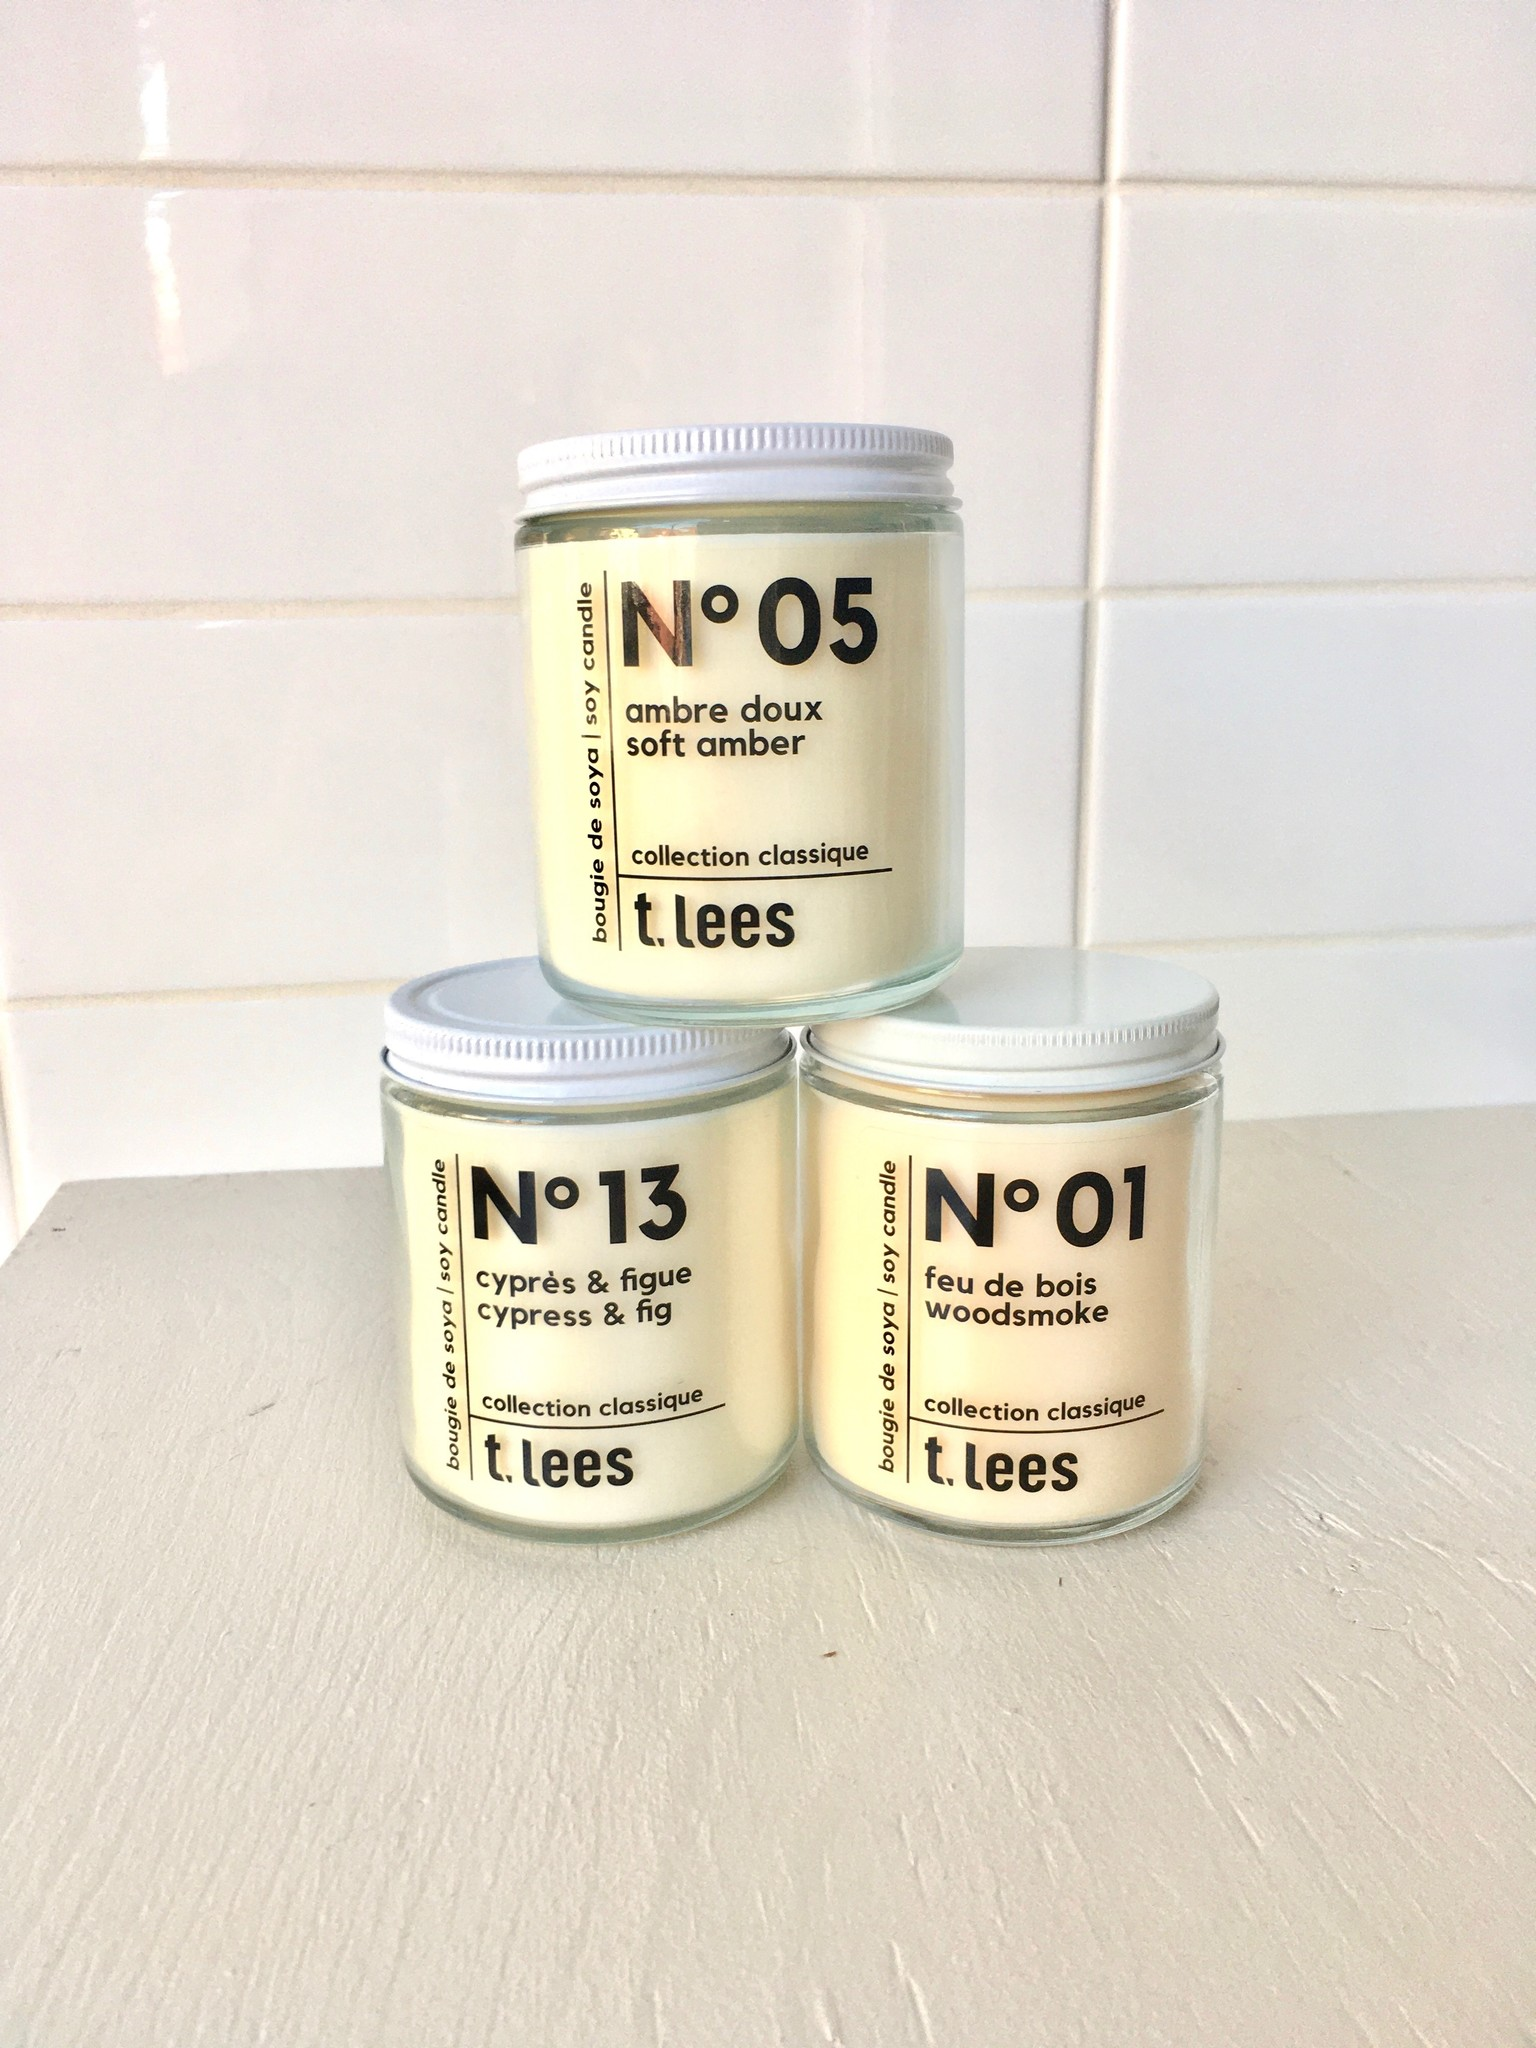 T. Lees Co. T. Lees Soy Candle 8oz